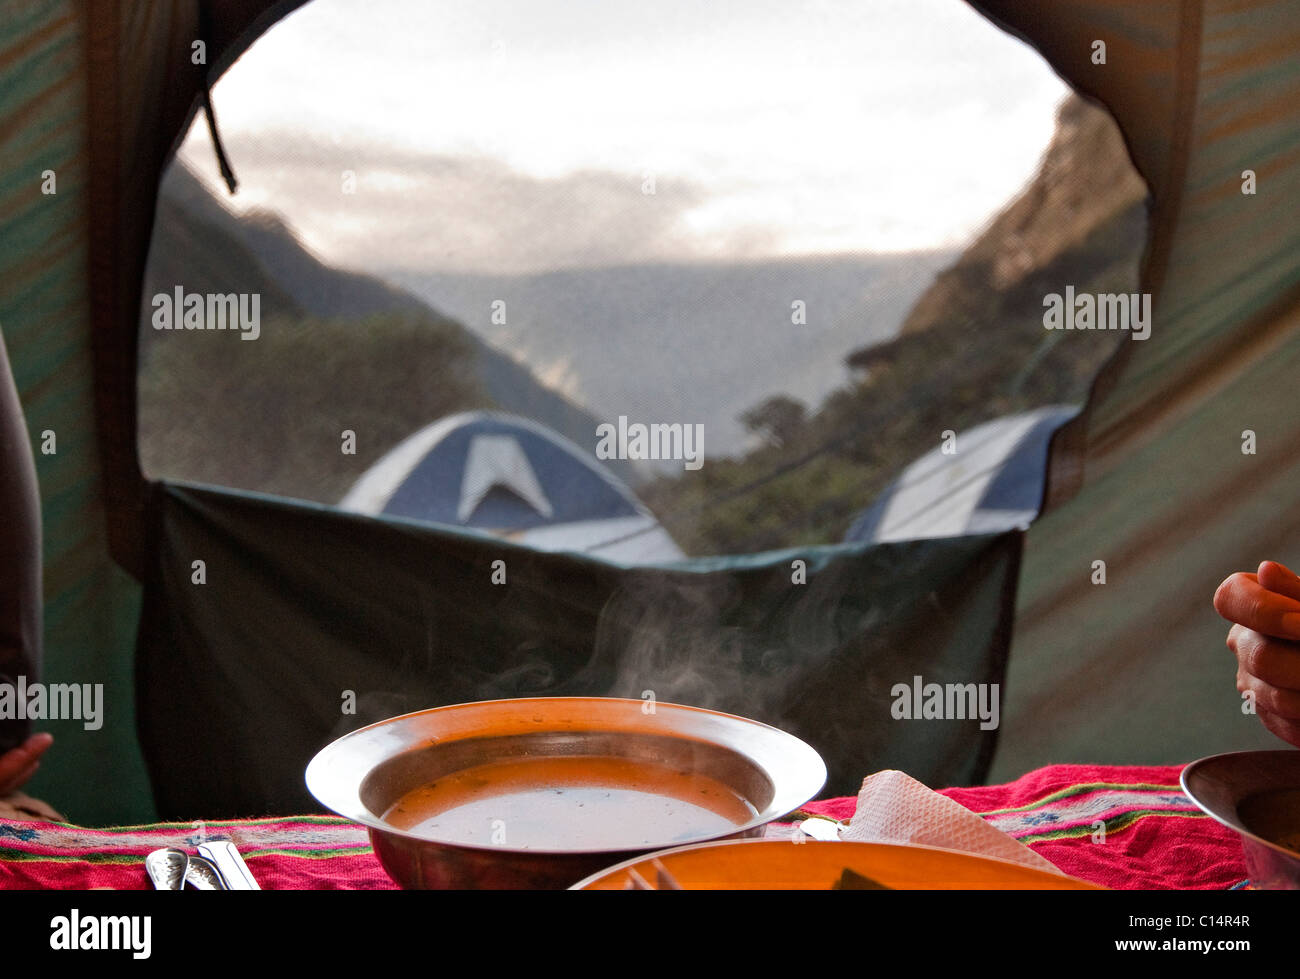 A freshly brewed hot bowl of soup steams in a tent as the sun sets in the Andes Mountains. - Stock Image